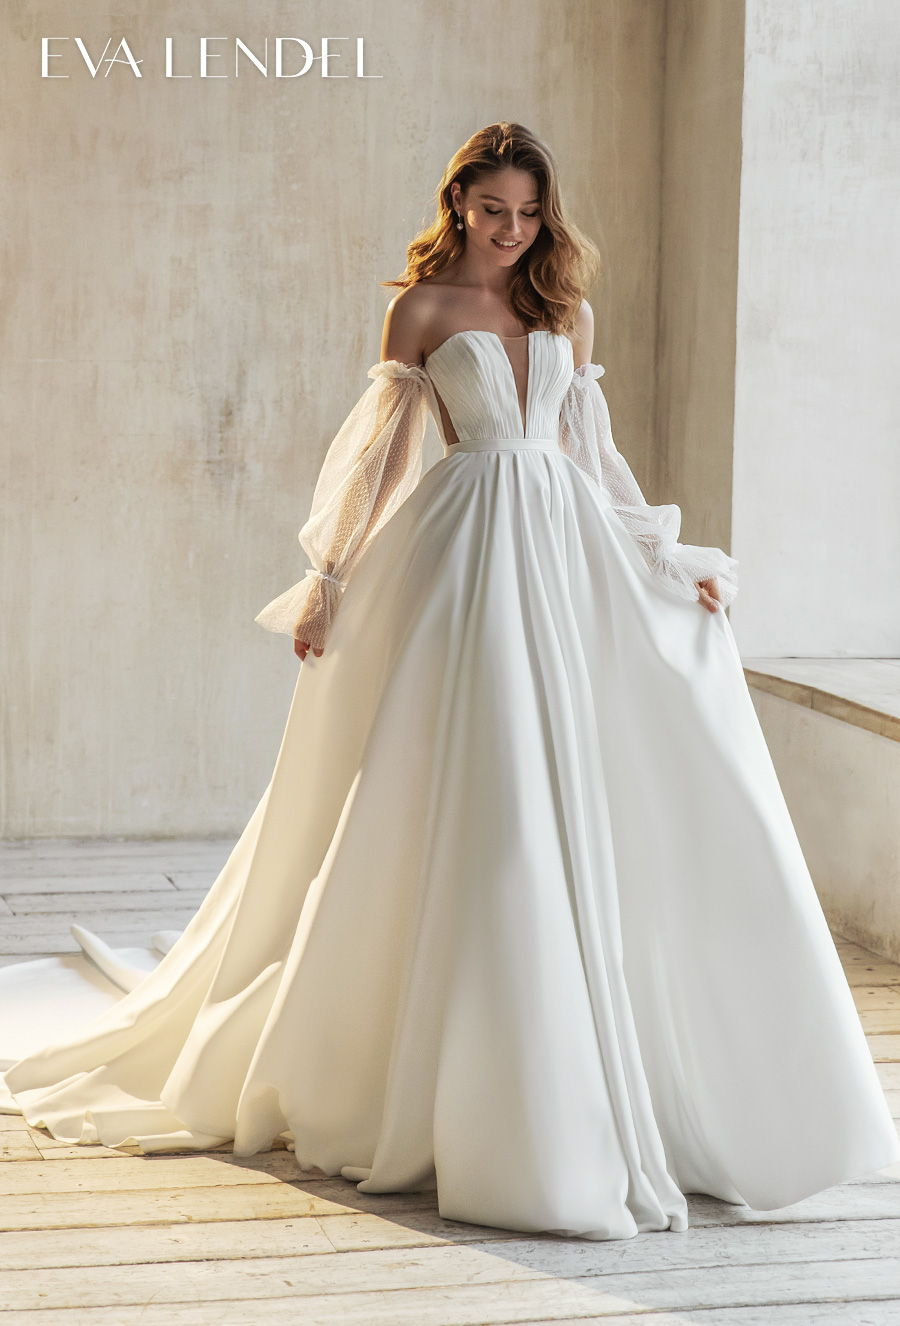 eva lendel 2021 bridal long poet sleeves off the shoulder deep plunging v neck simple romantic a line wedding dress mid back chapel train (josie) mv